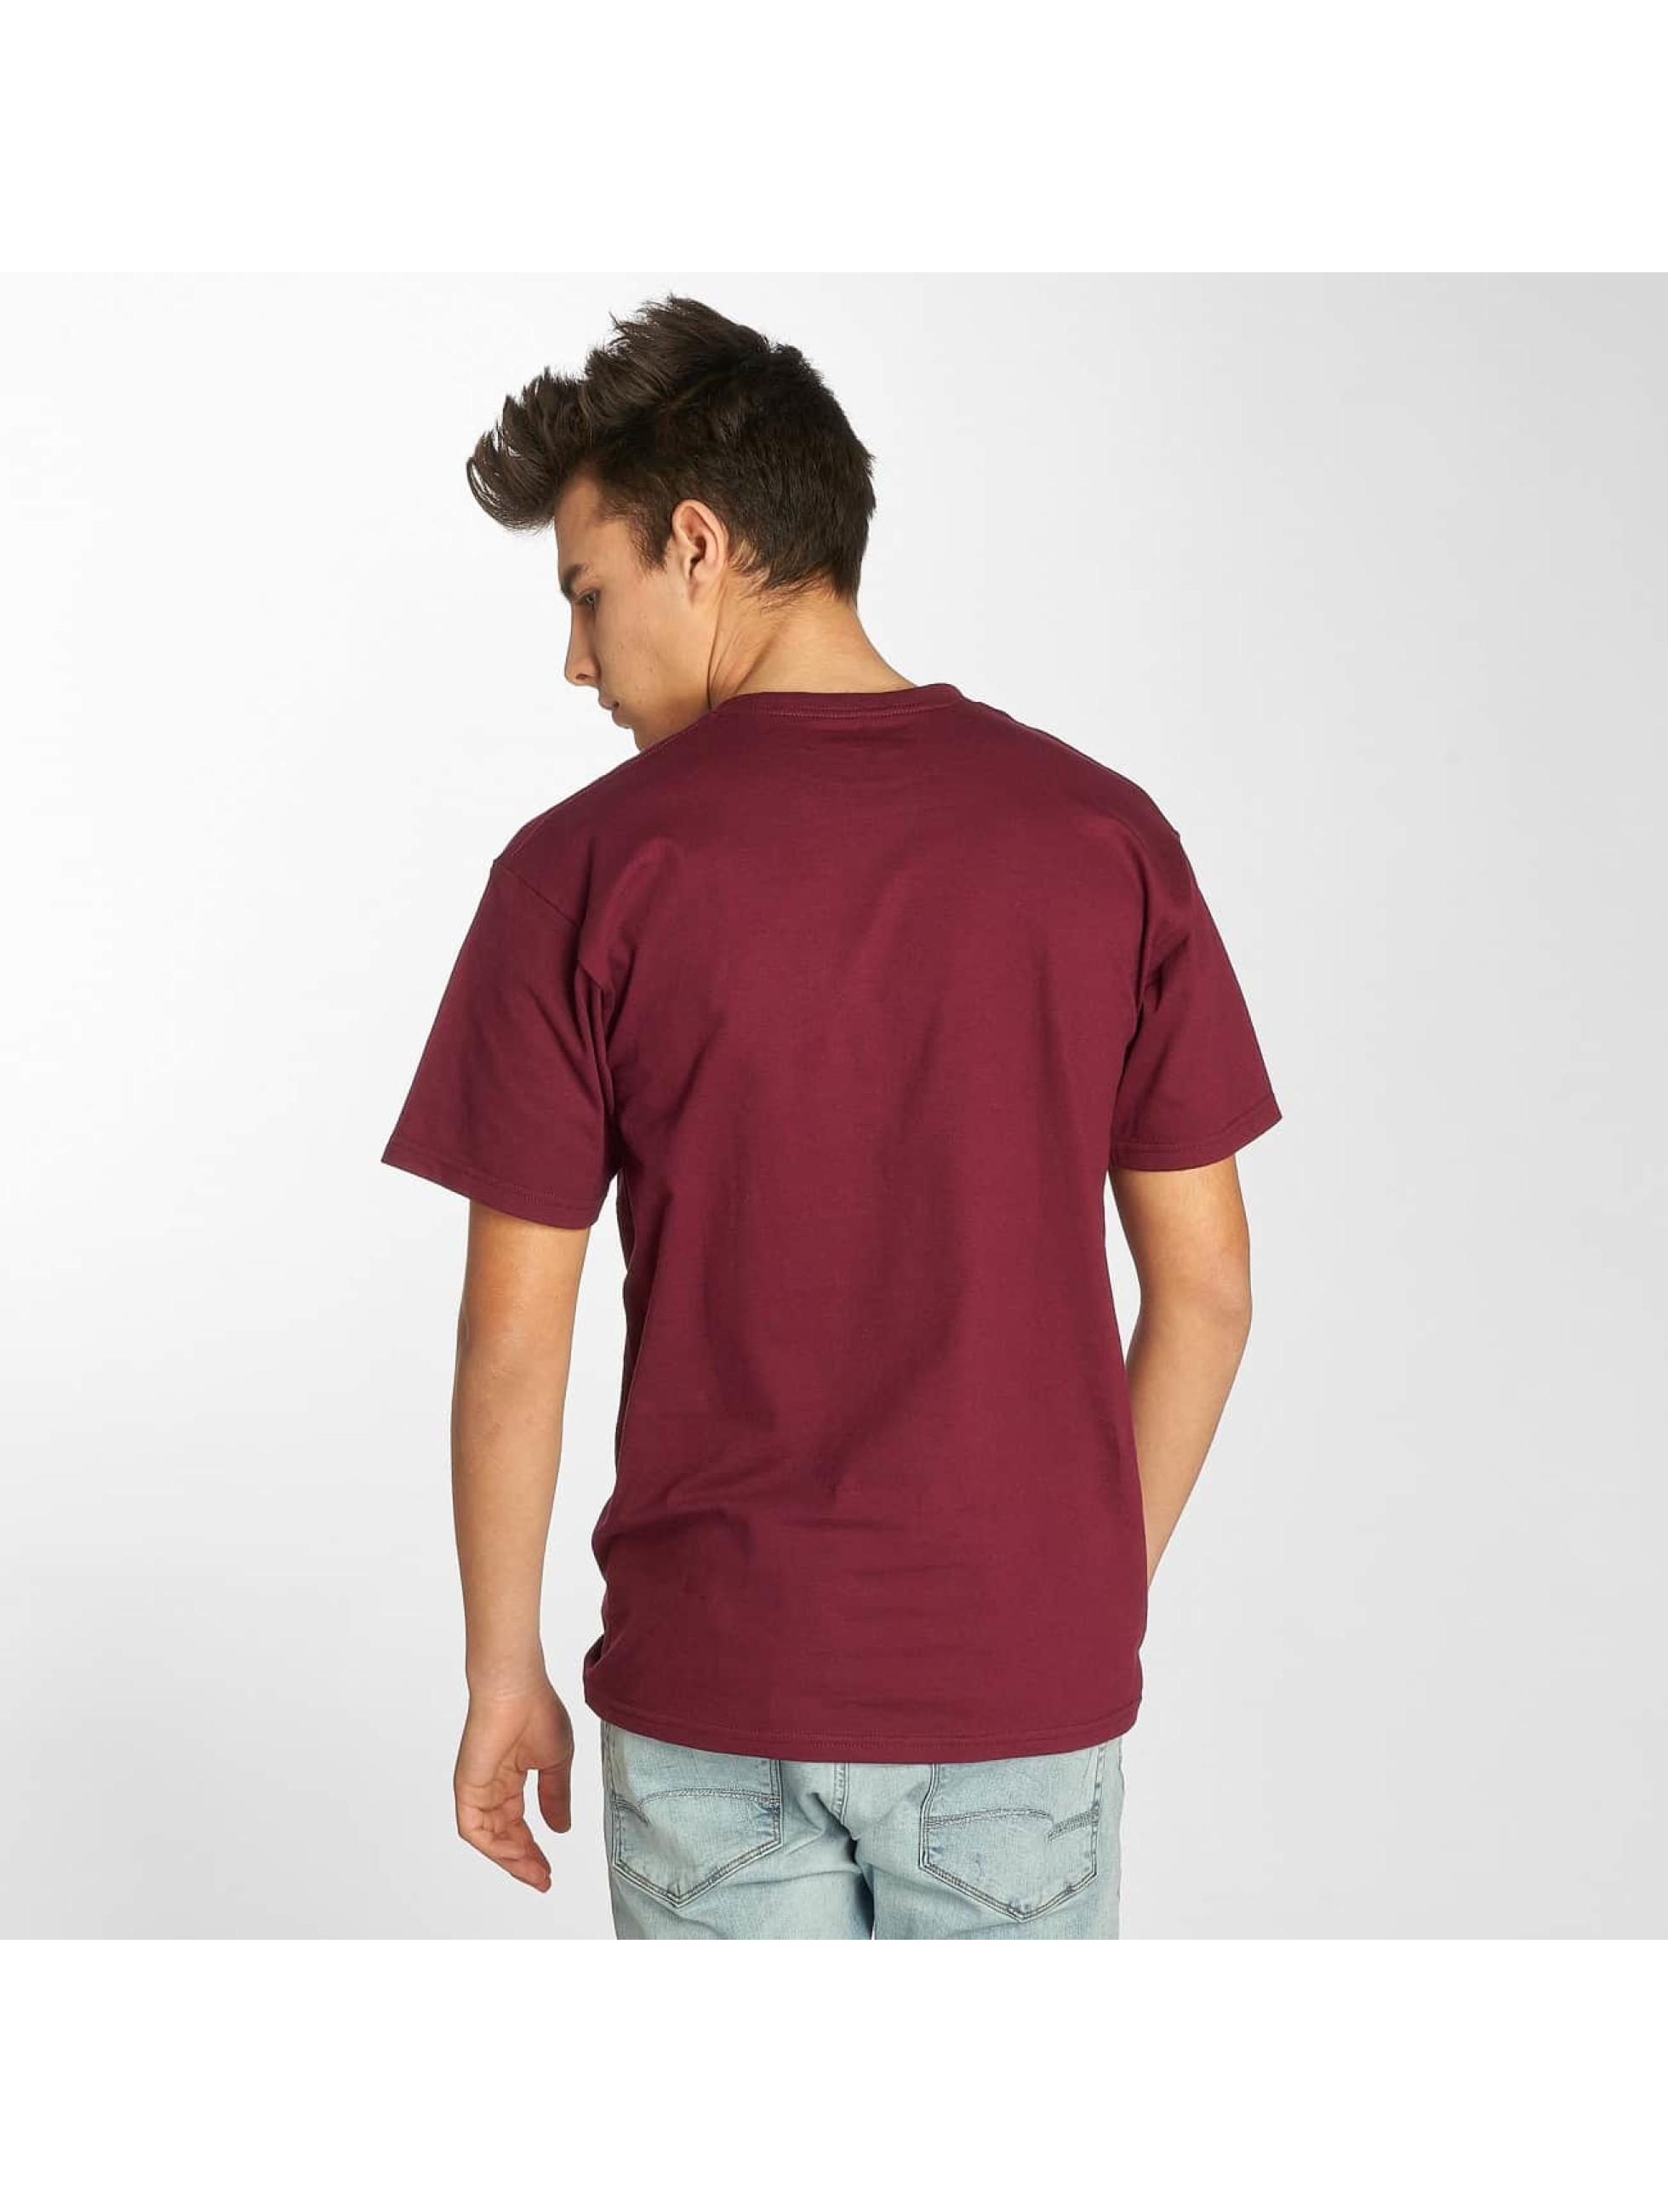 Etnies t-shirt New Box rood